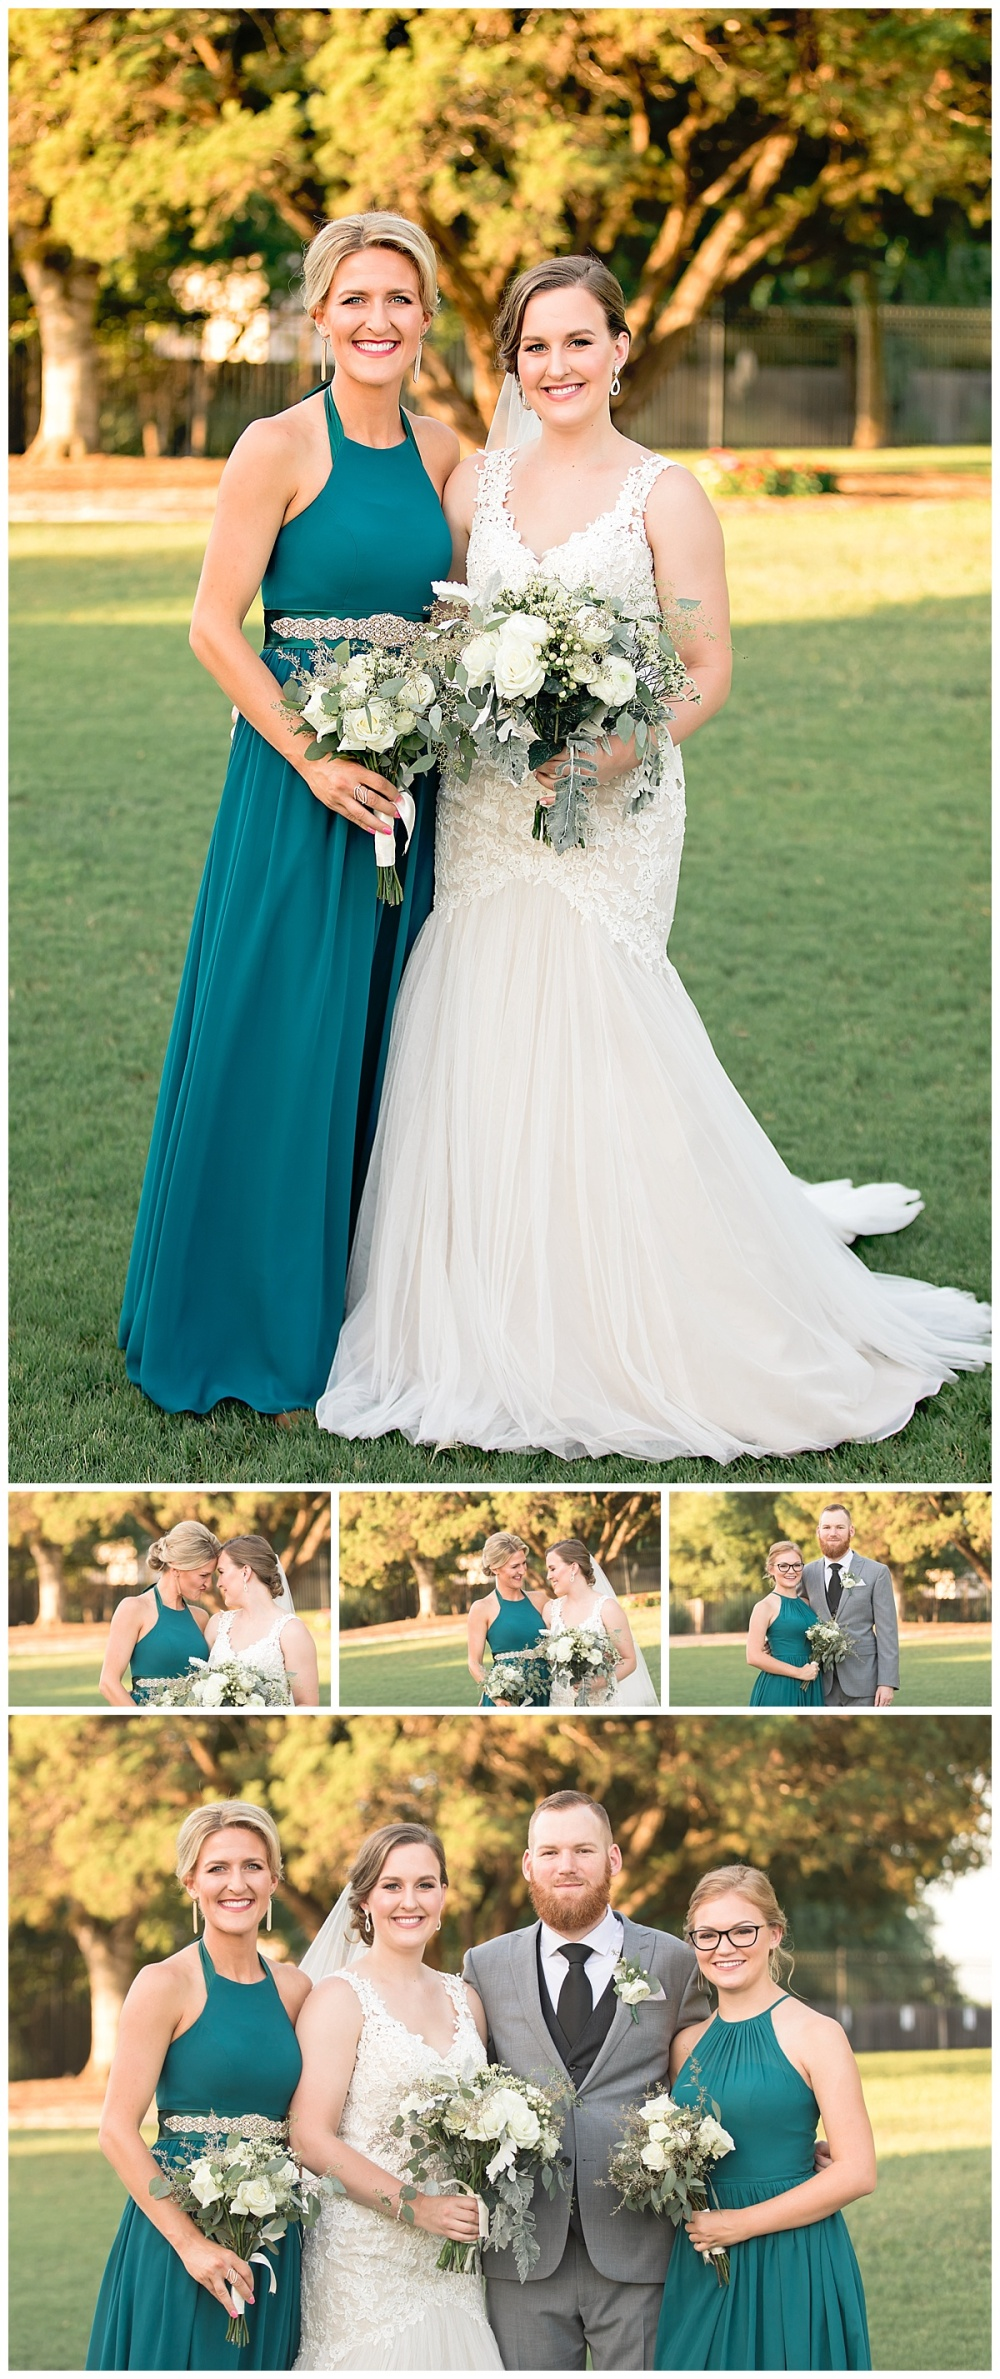 Carly-Barton-Photography-Wedding-Photos-Granberry-Hills-Event-Facility-Ryan-Chelsea-San-Antonio-Texas_0040